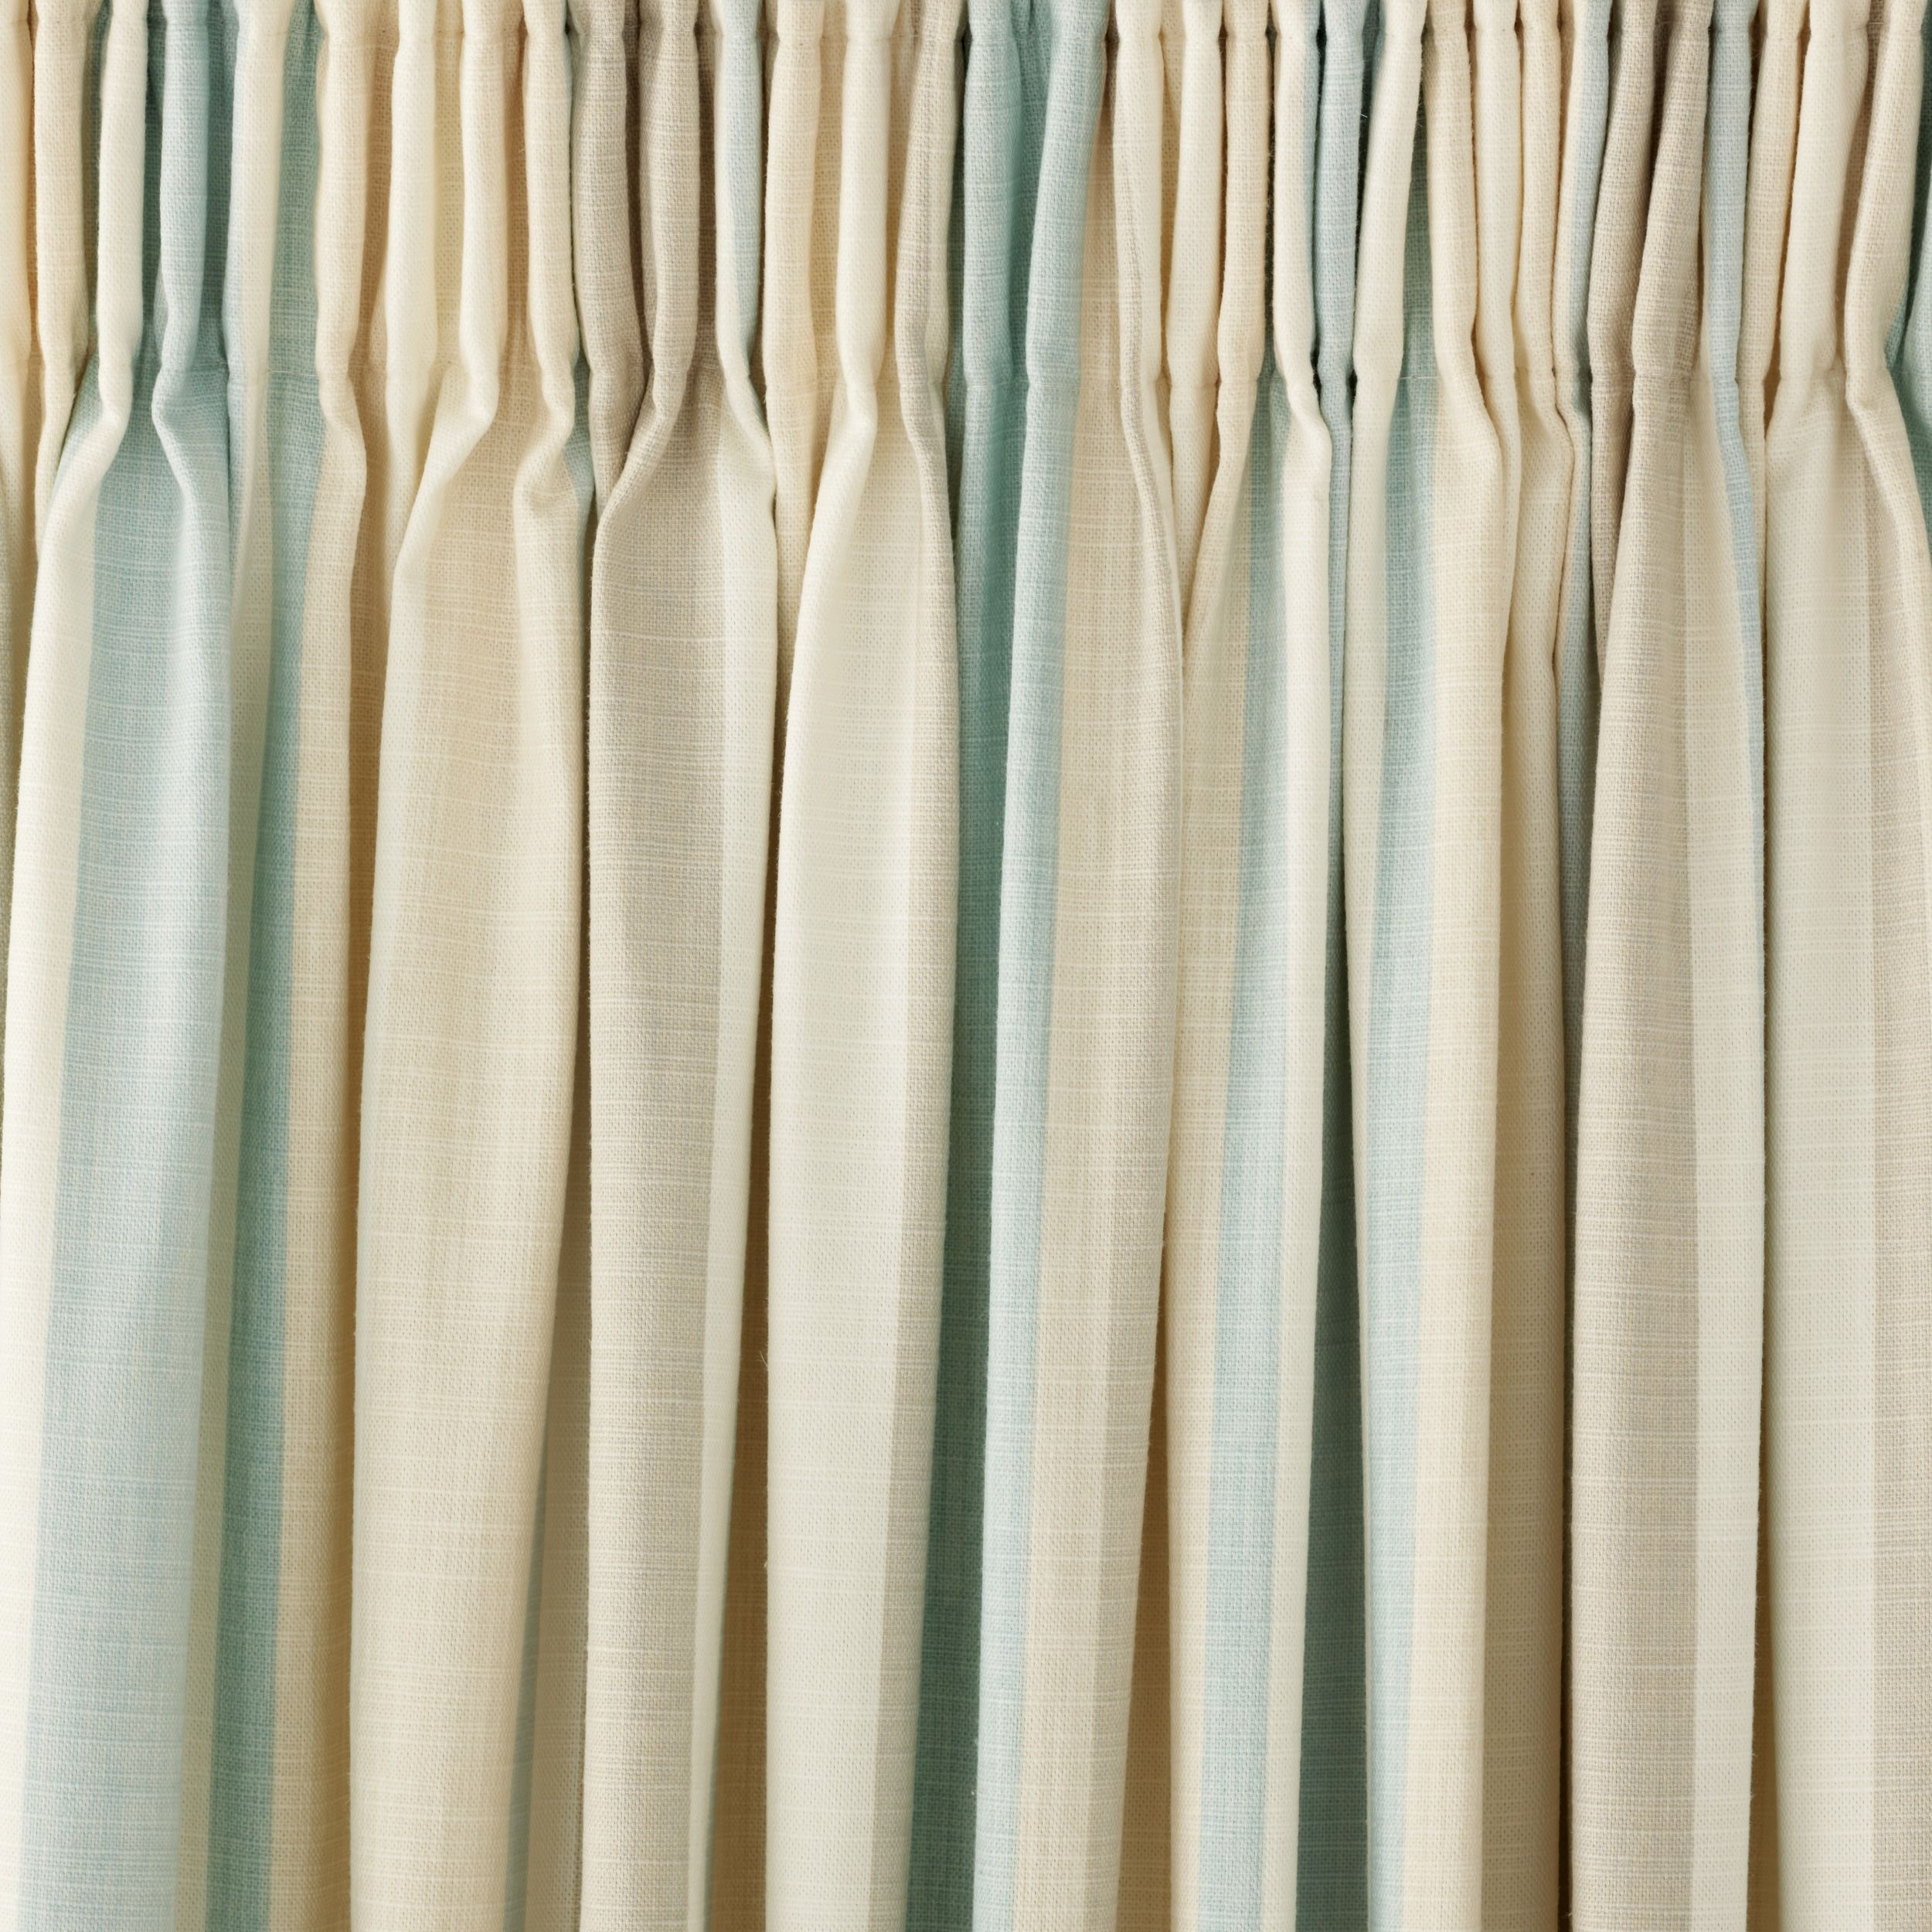 Awning Stripe Duck Egg Cotton Pencil Pleat Ready Made Curtains - Laura ashley silk curtains